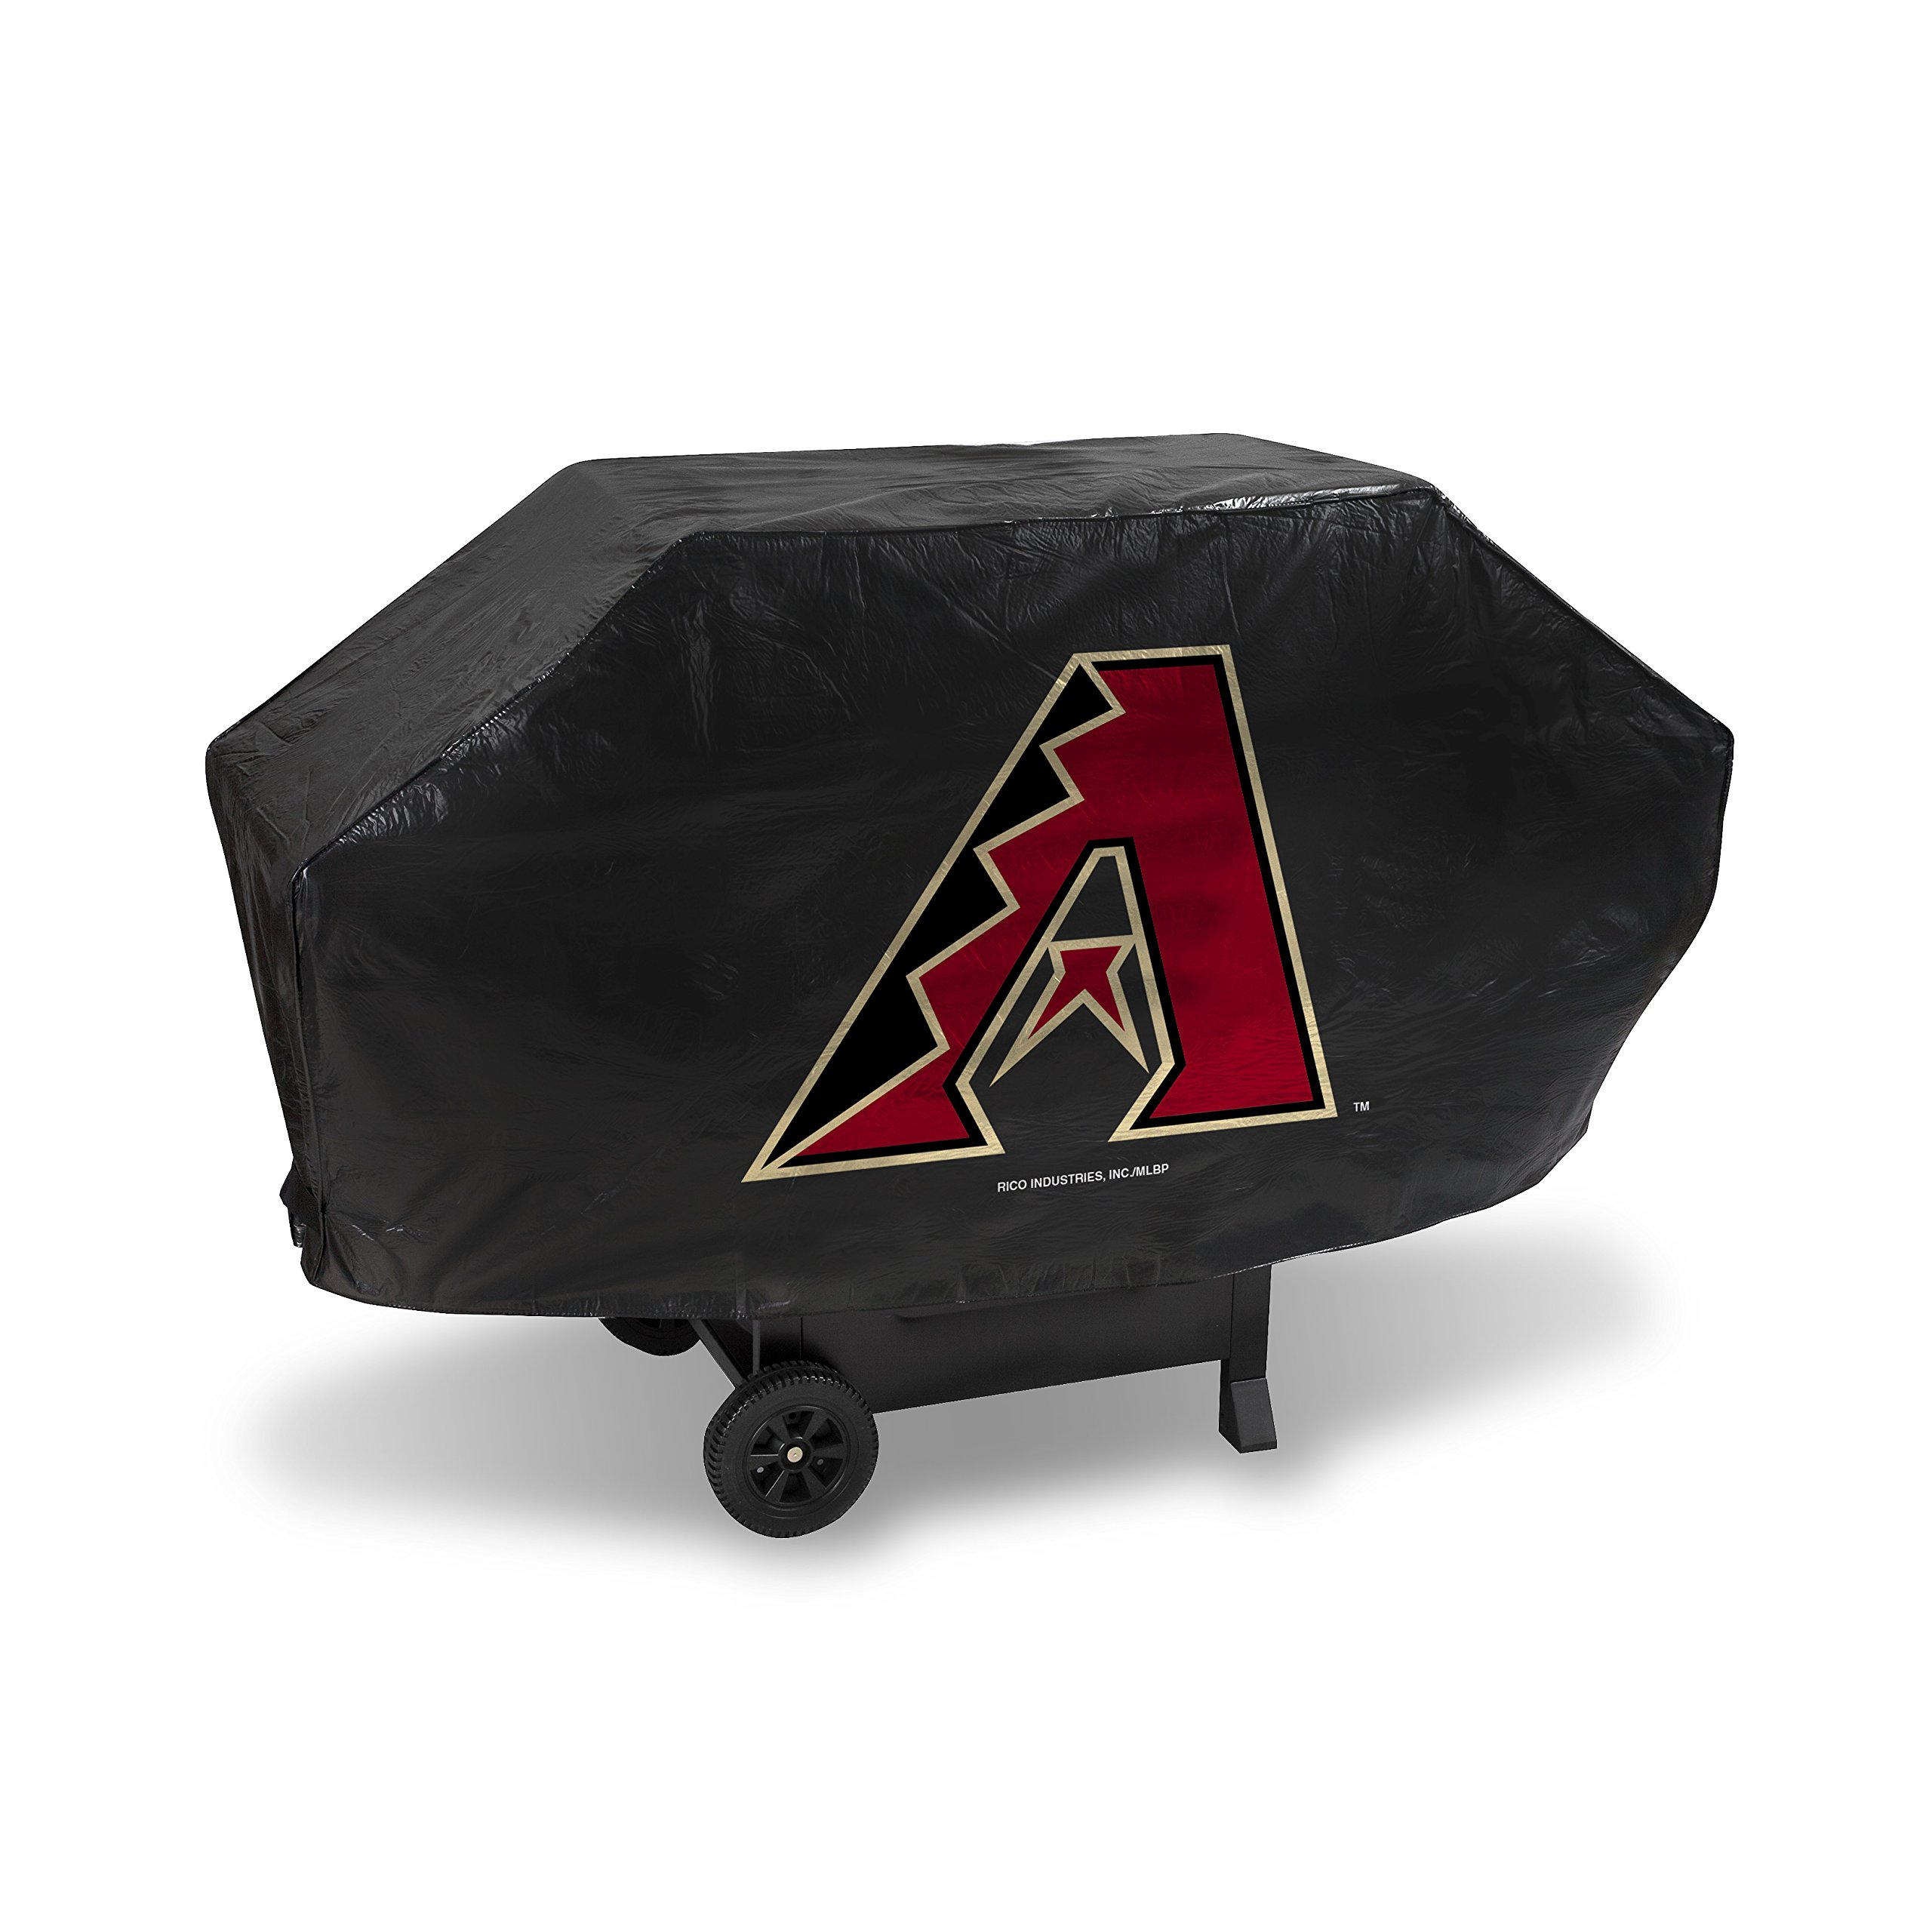 Rico Industries MLB Arizona Diamondbacks Deluxe Grill Cover, Black, 68 x 21 x 35